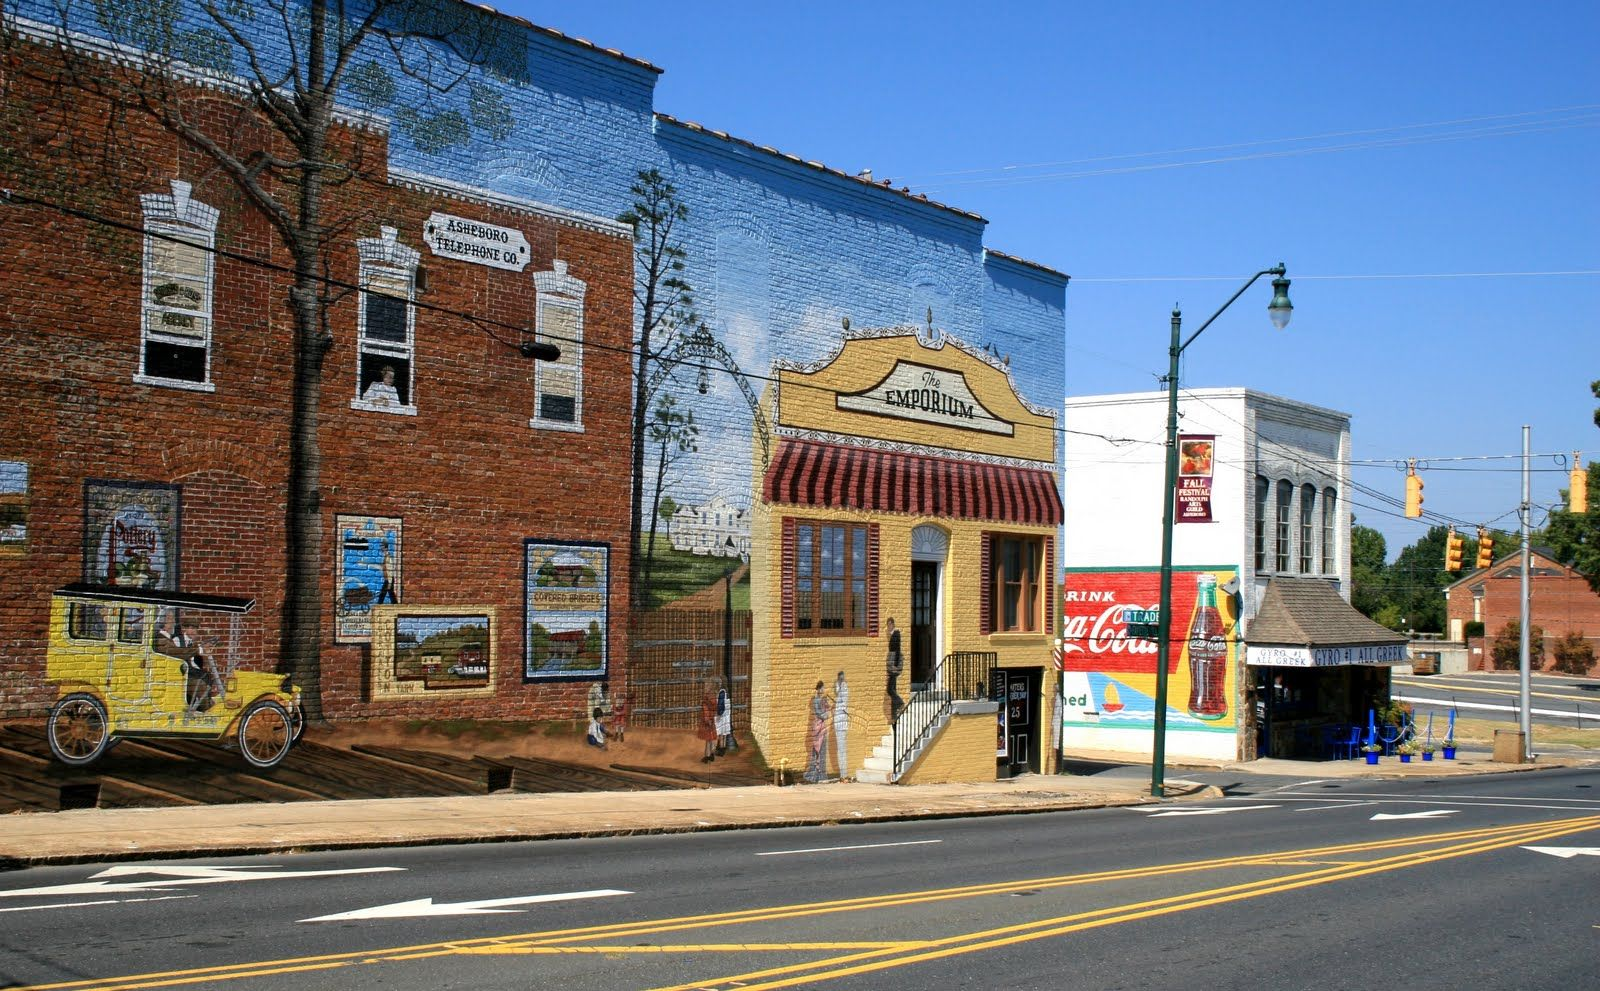 Asheboro Nc Fayetteville St Mural Favorite Places Spaces In